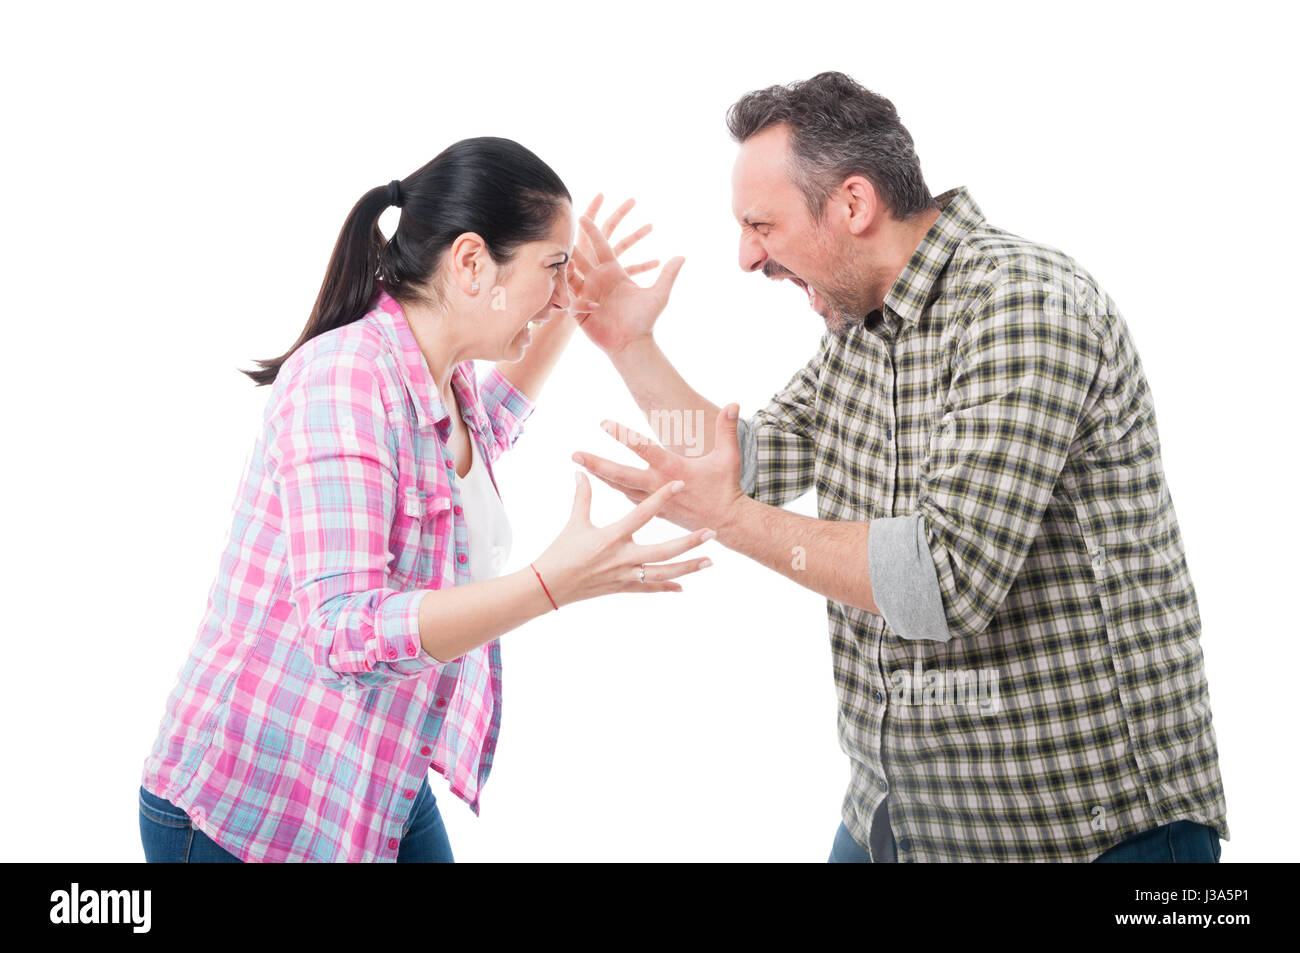 Young couple having an argue and yelling at each other isolated on white background - Stock Image